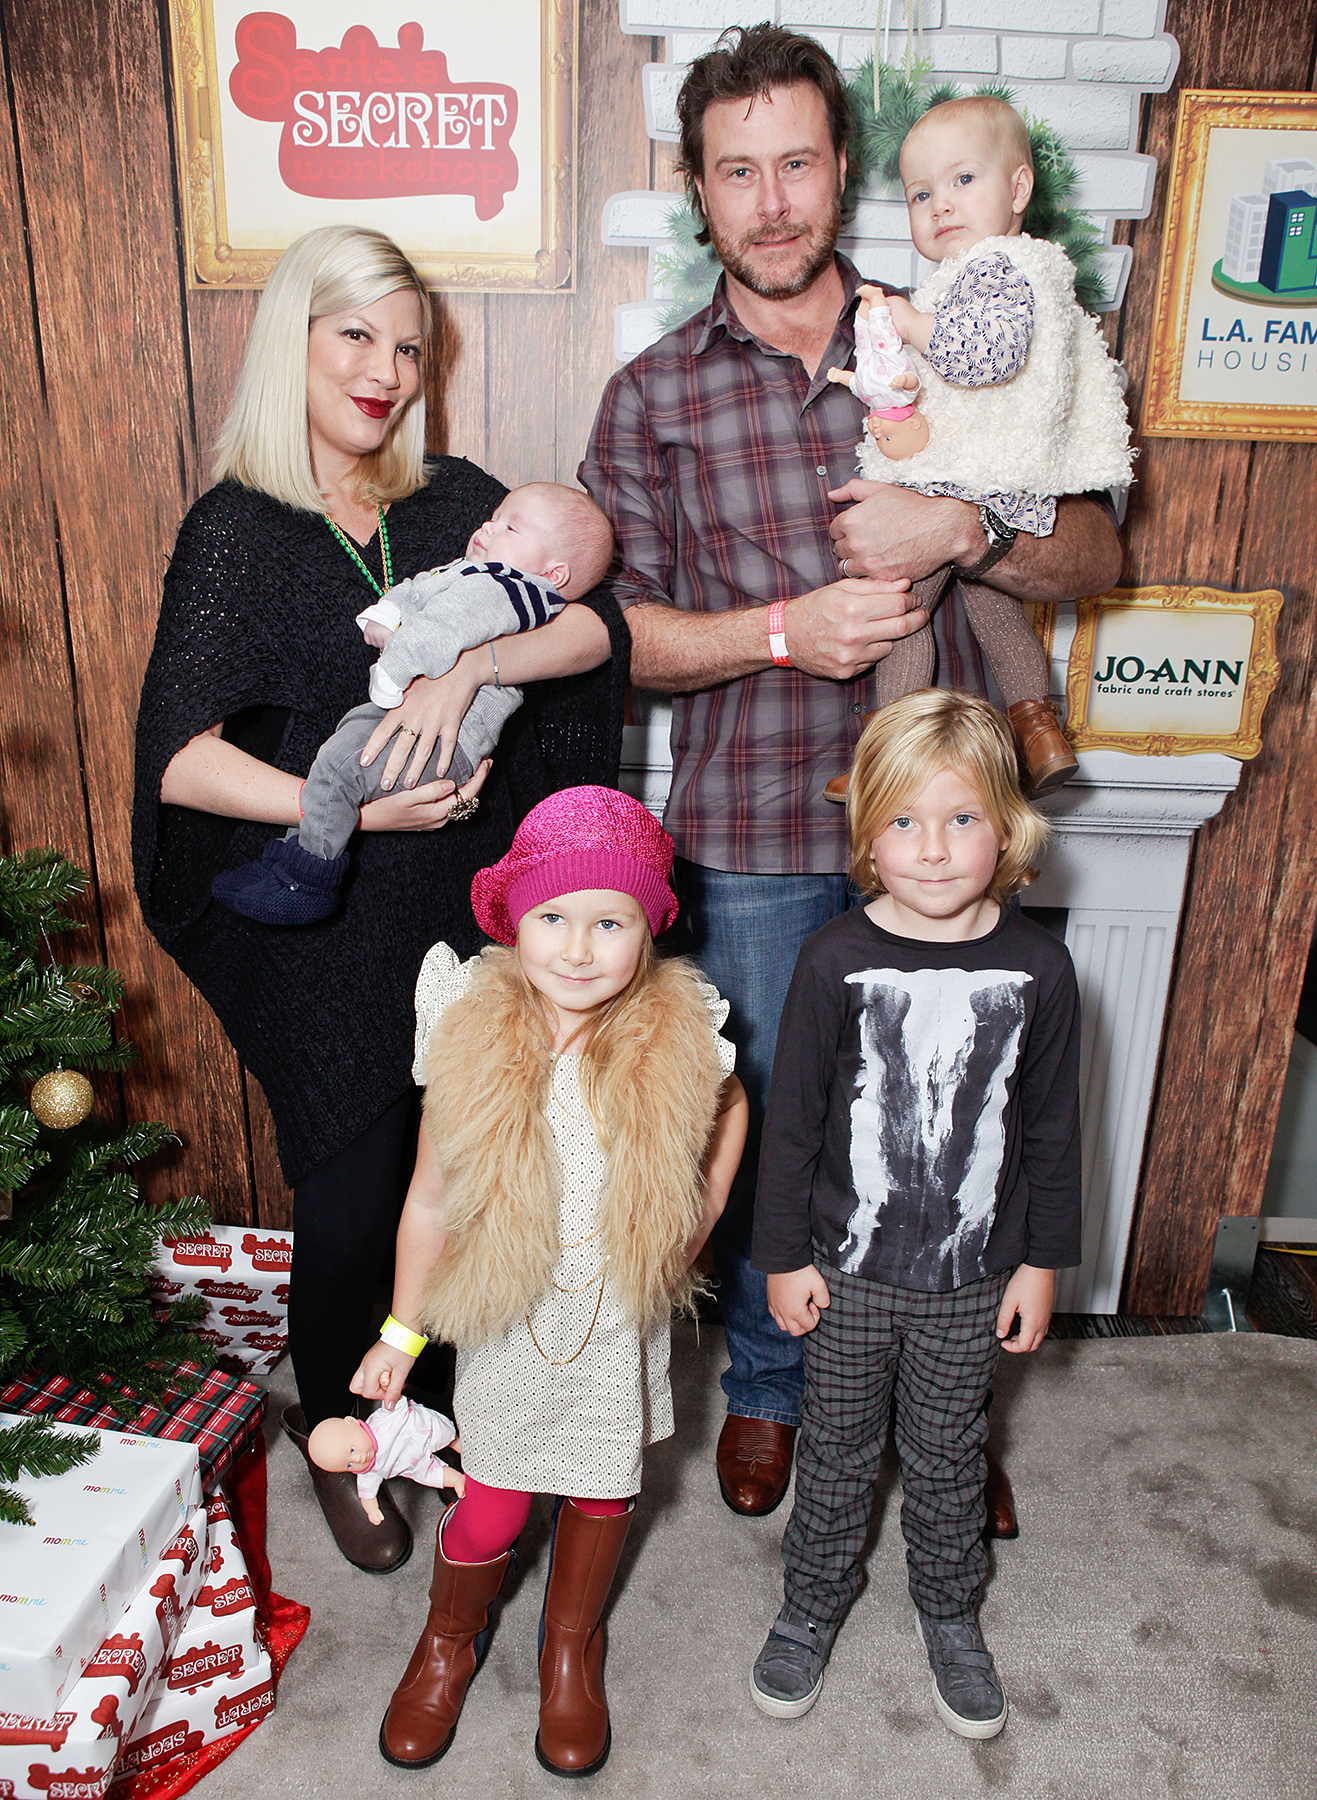 Tori Spelling Dean McDermott Liam Stella Hattie Finn - Actress Tori Spelling with son Finn, husband Dean McDermott, daughter Hattie, daughter Stella and son Liam attended the 2nd Annual Santa's Secret Workshop Benefiting L.A. Family Housing at Andaz on December 1, 2012 in West Hollywood, California.